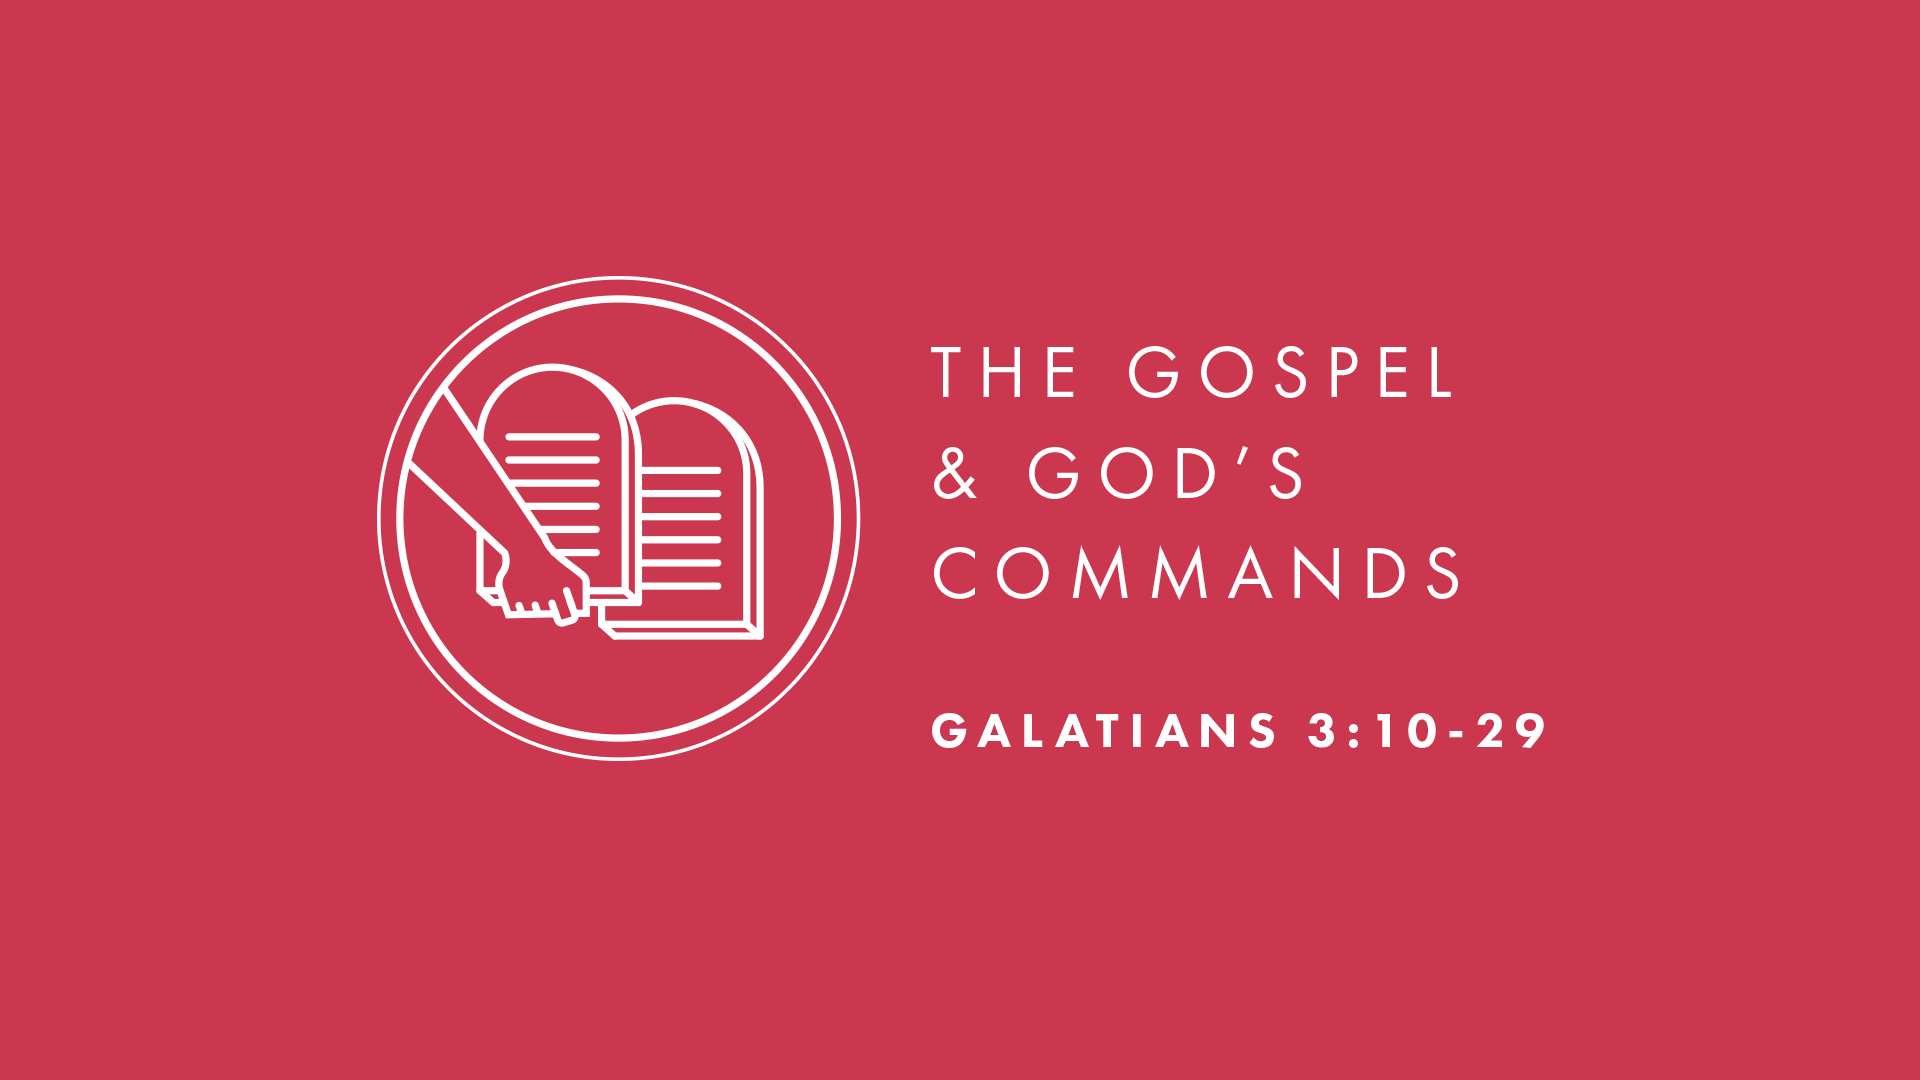 The Gospel and God's Commands